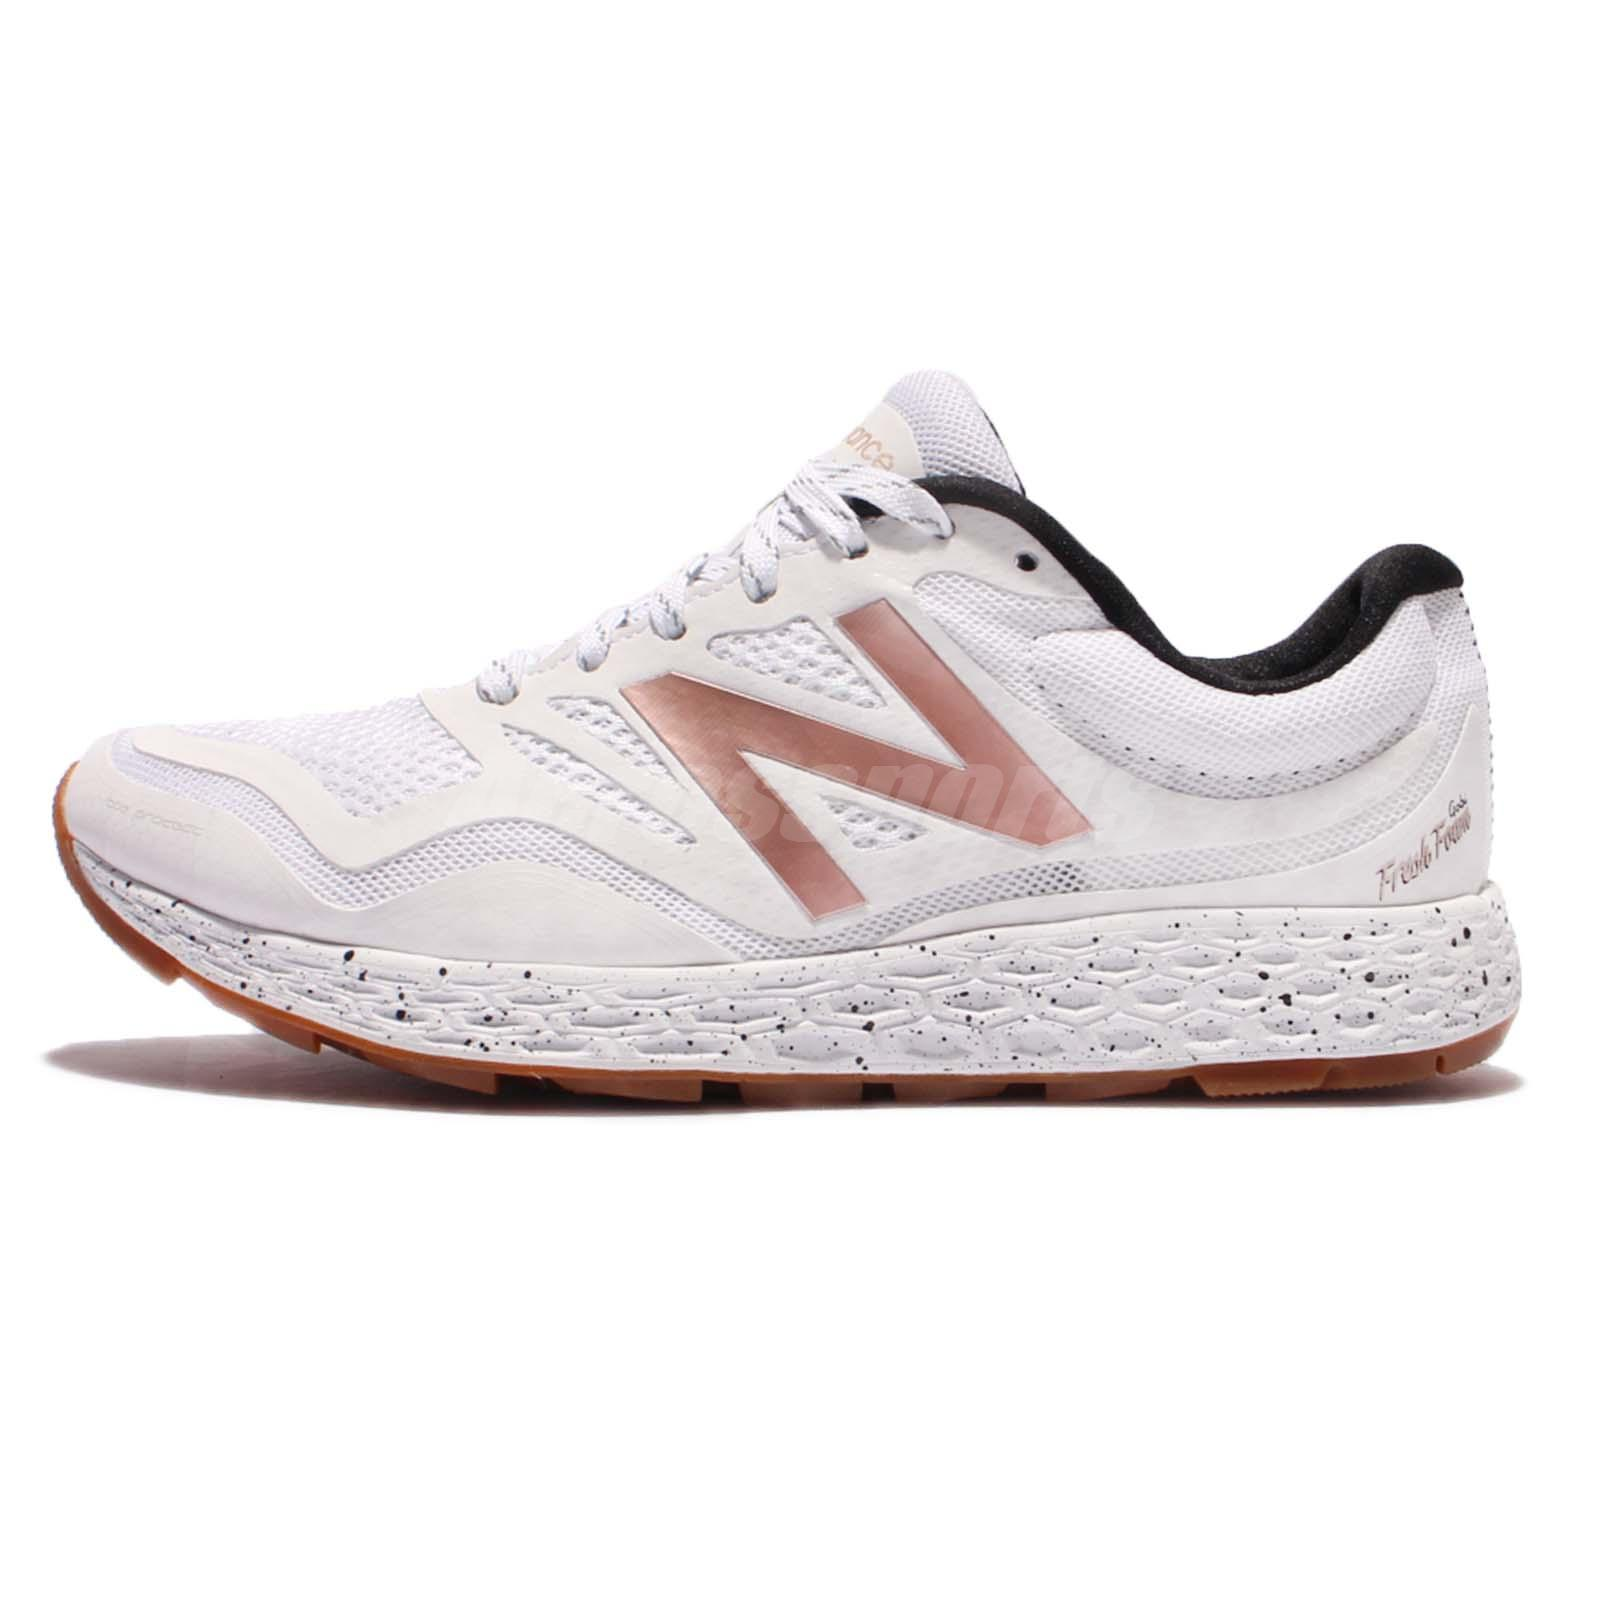 new balance wtgobiwg d wide white rose gold women running shoe sneaker wtgobiwgd ebay. Black Bedroom Furniture Sets. Home Design Ideas